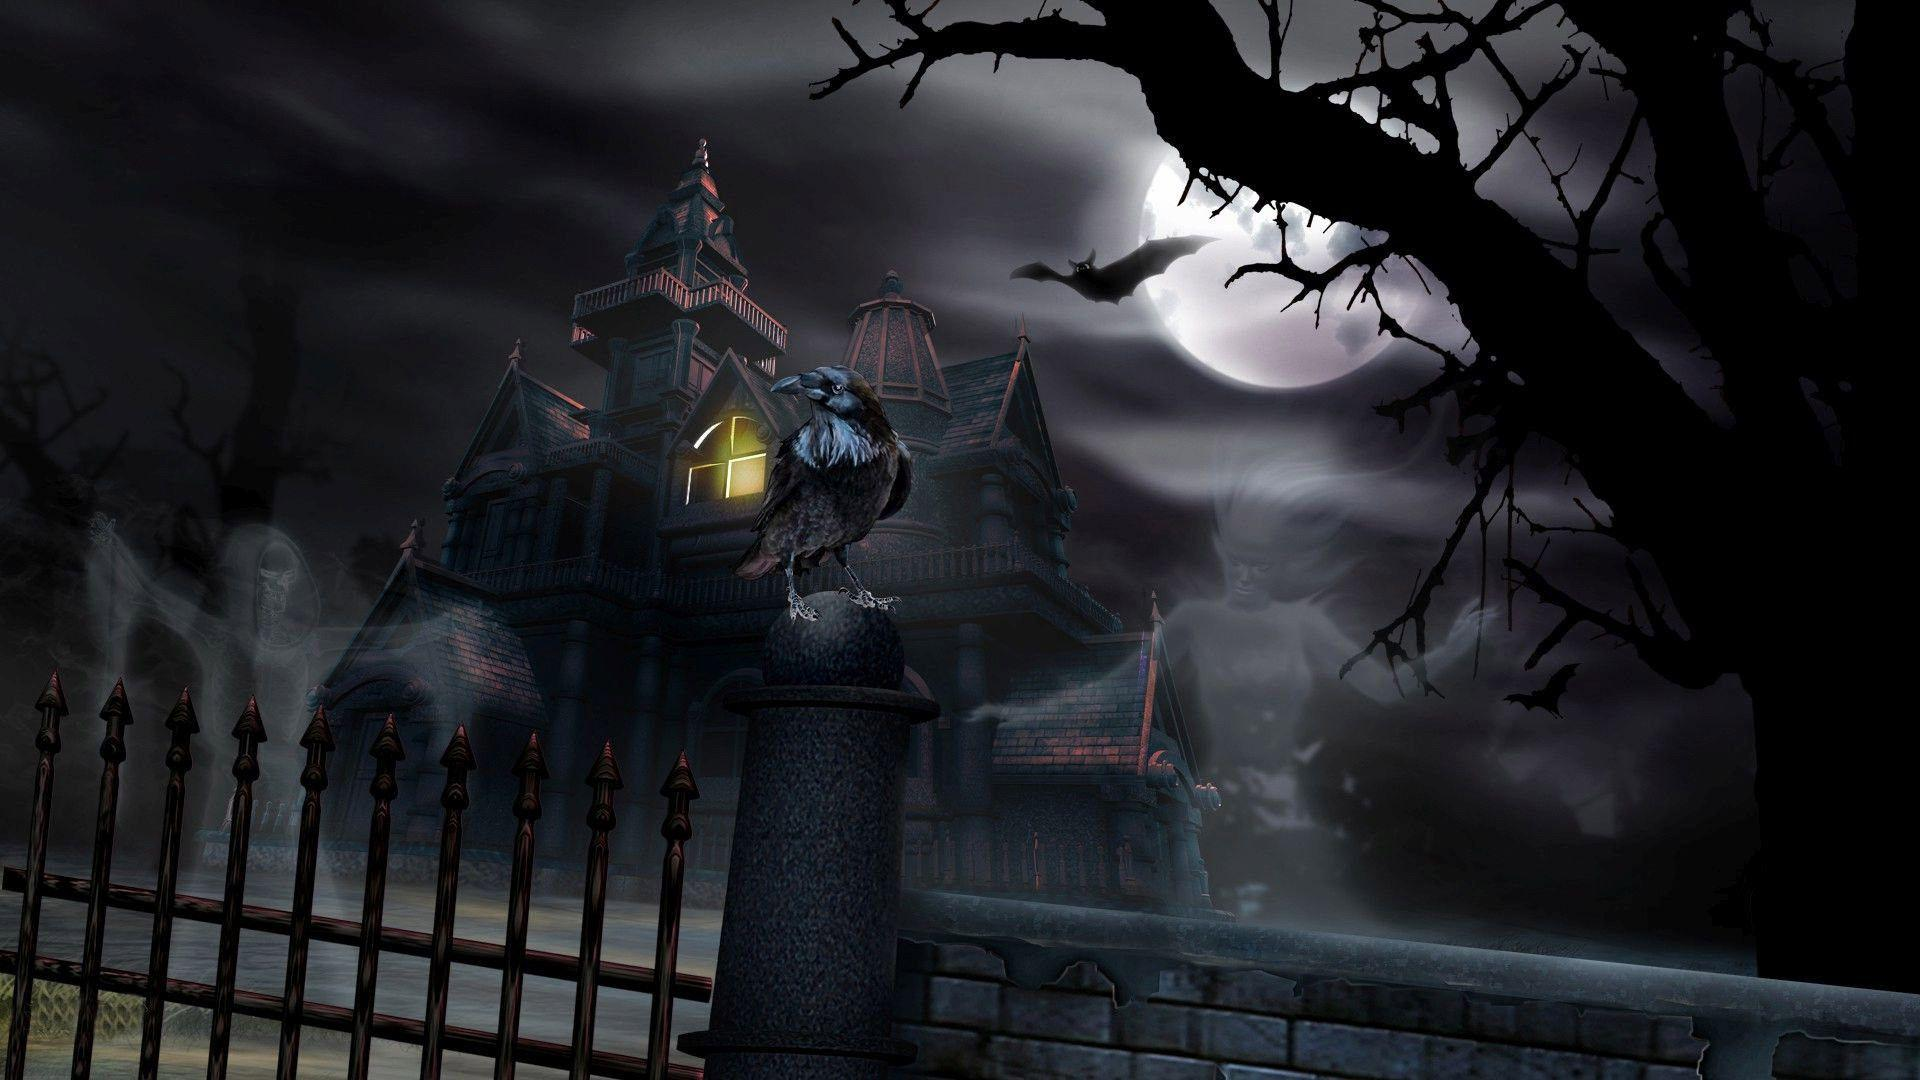 haunter hd wallpapers - photo #34